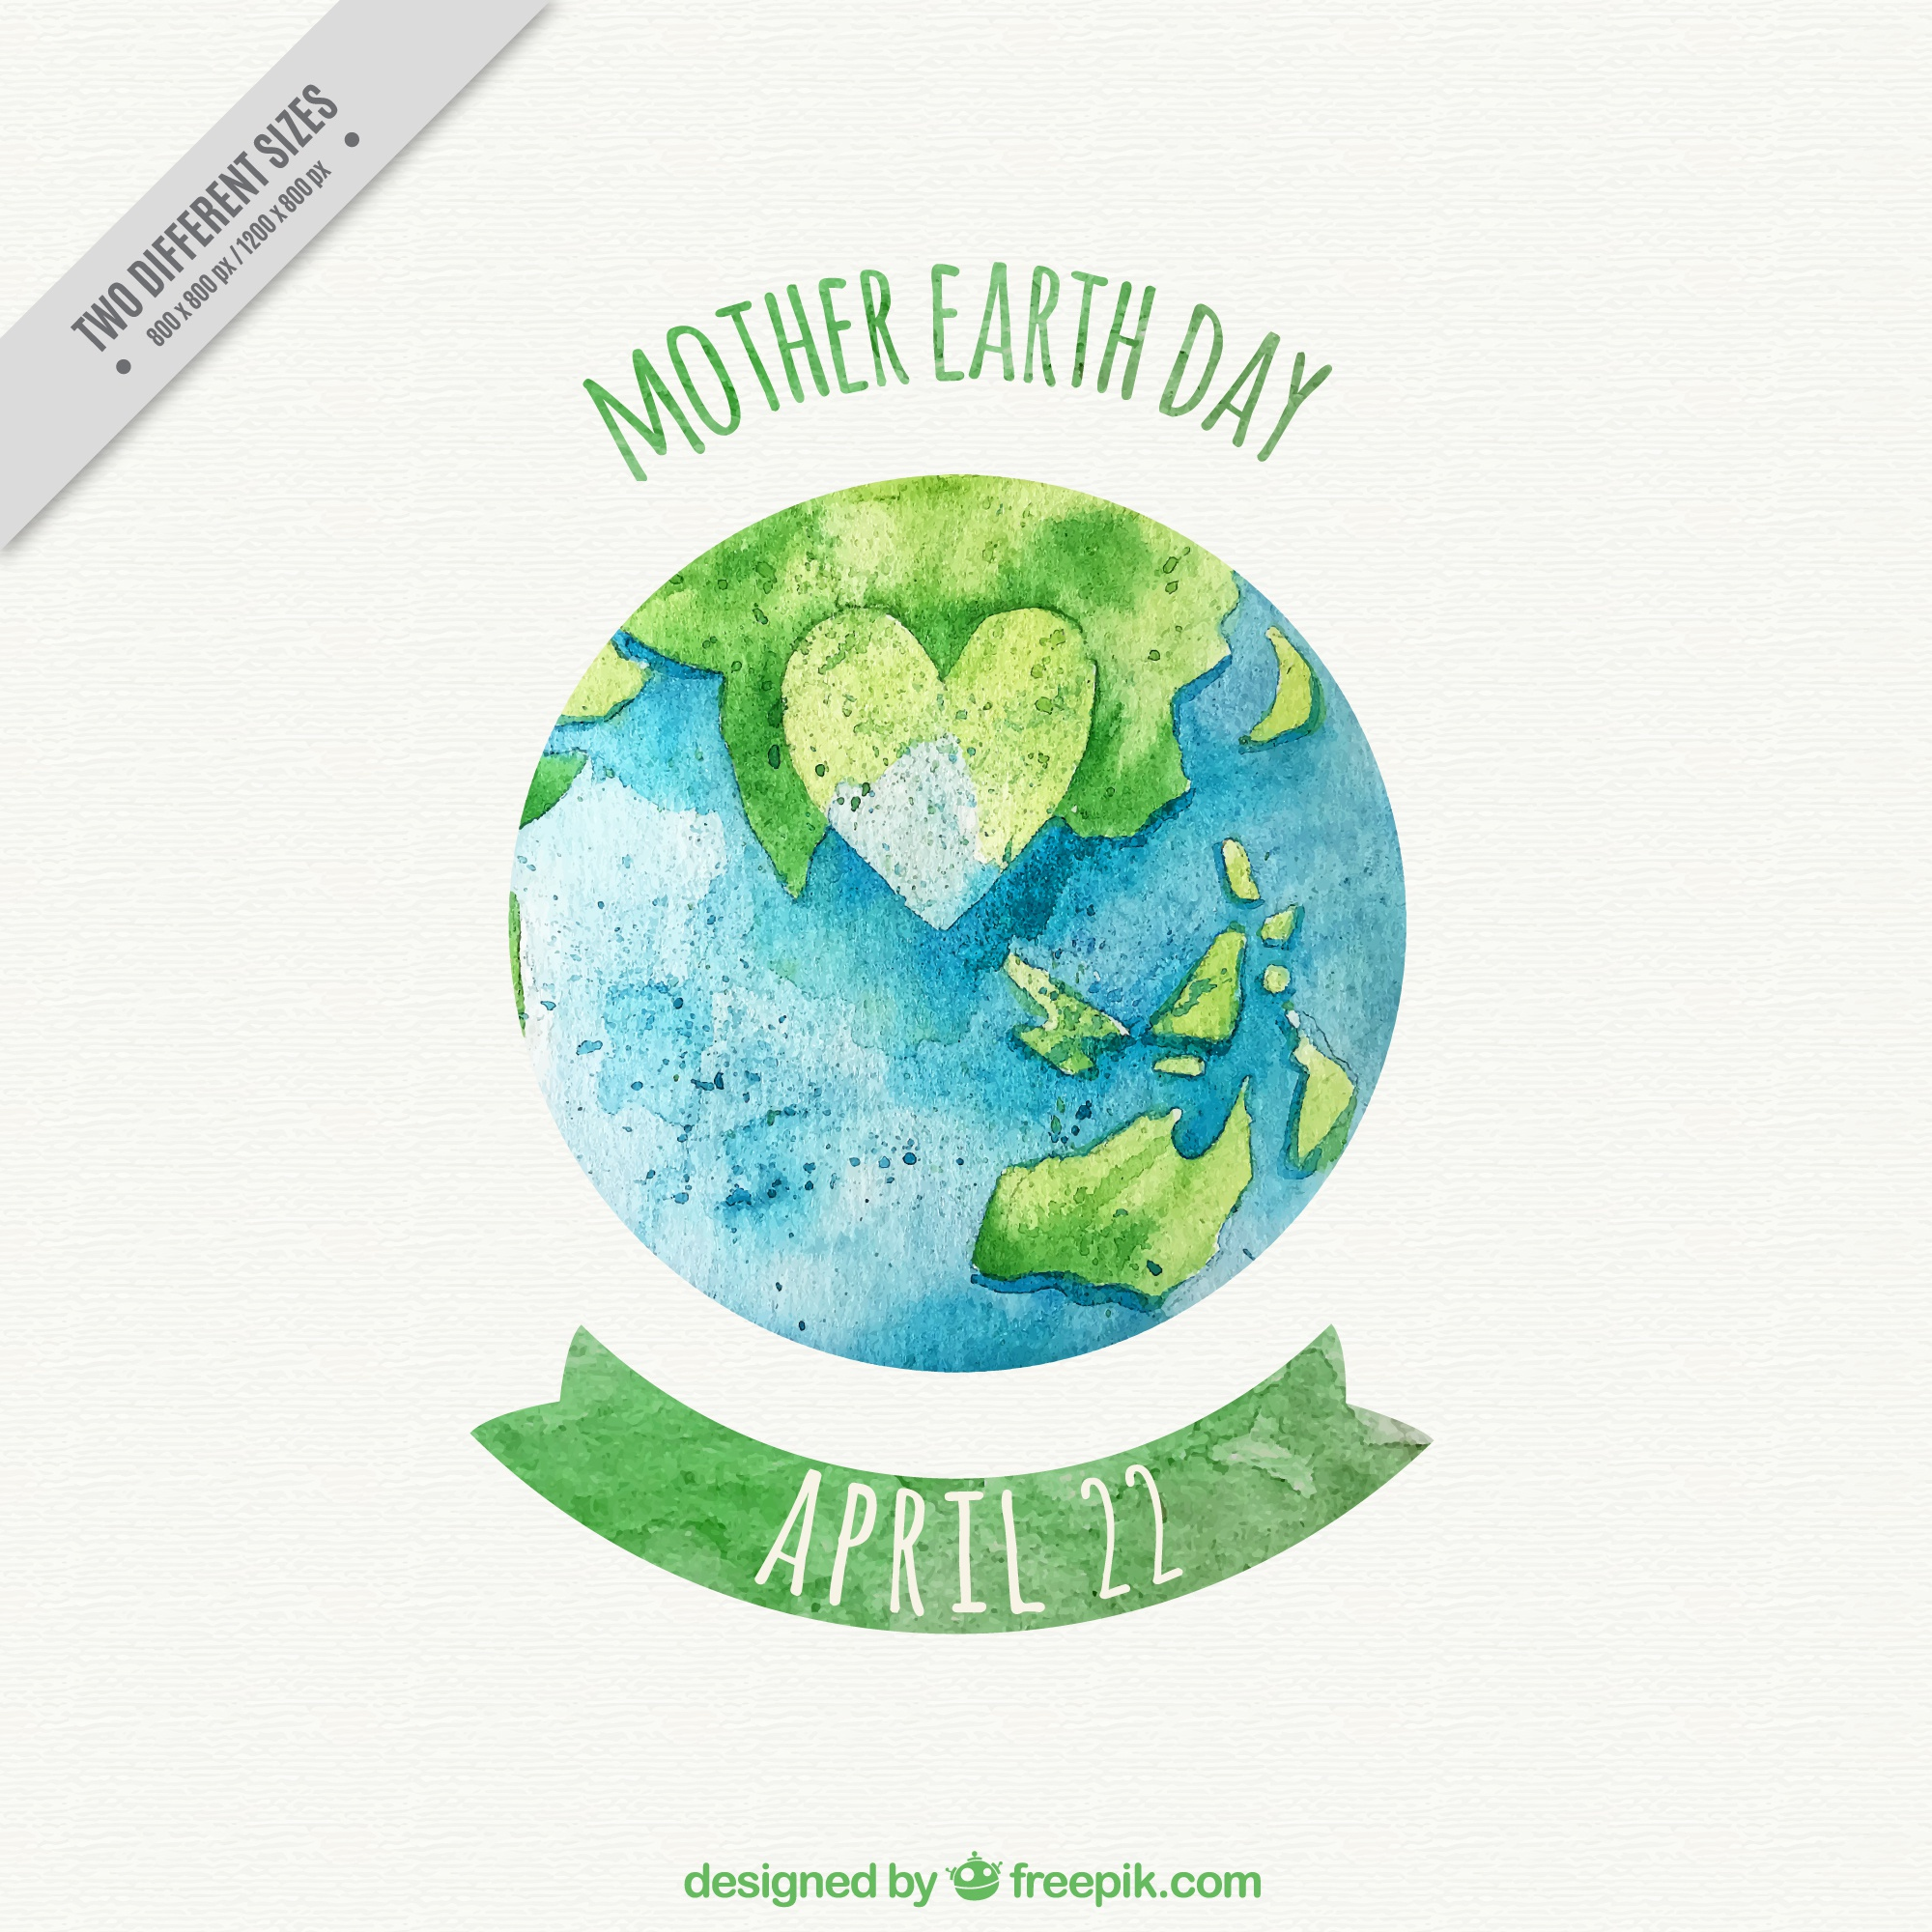 Mother earth day background with planet earth and heart